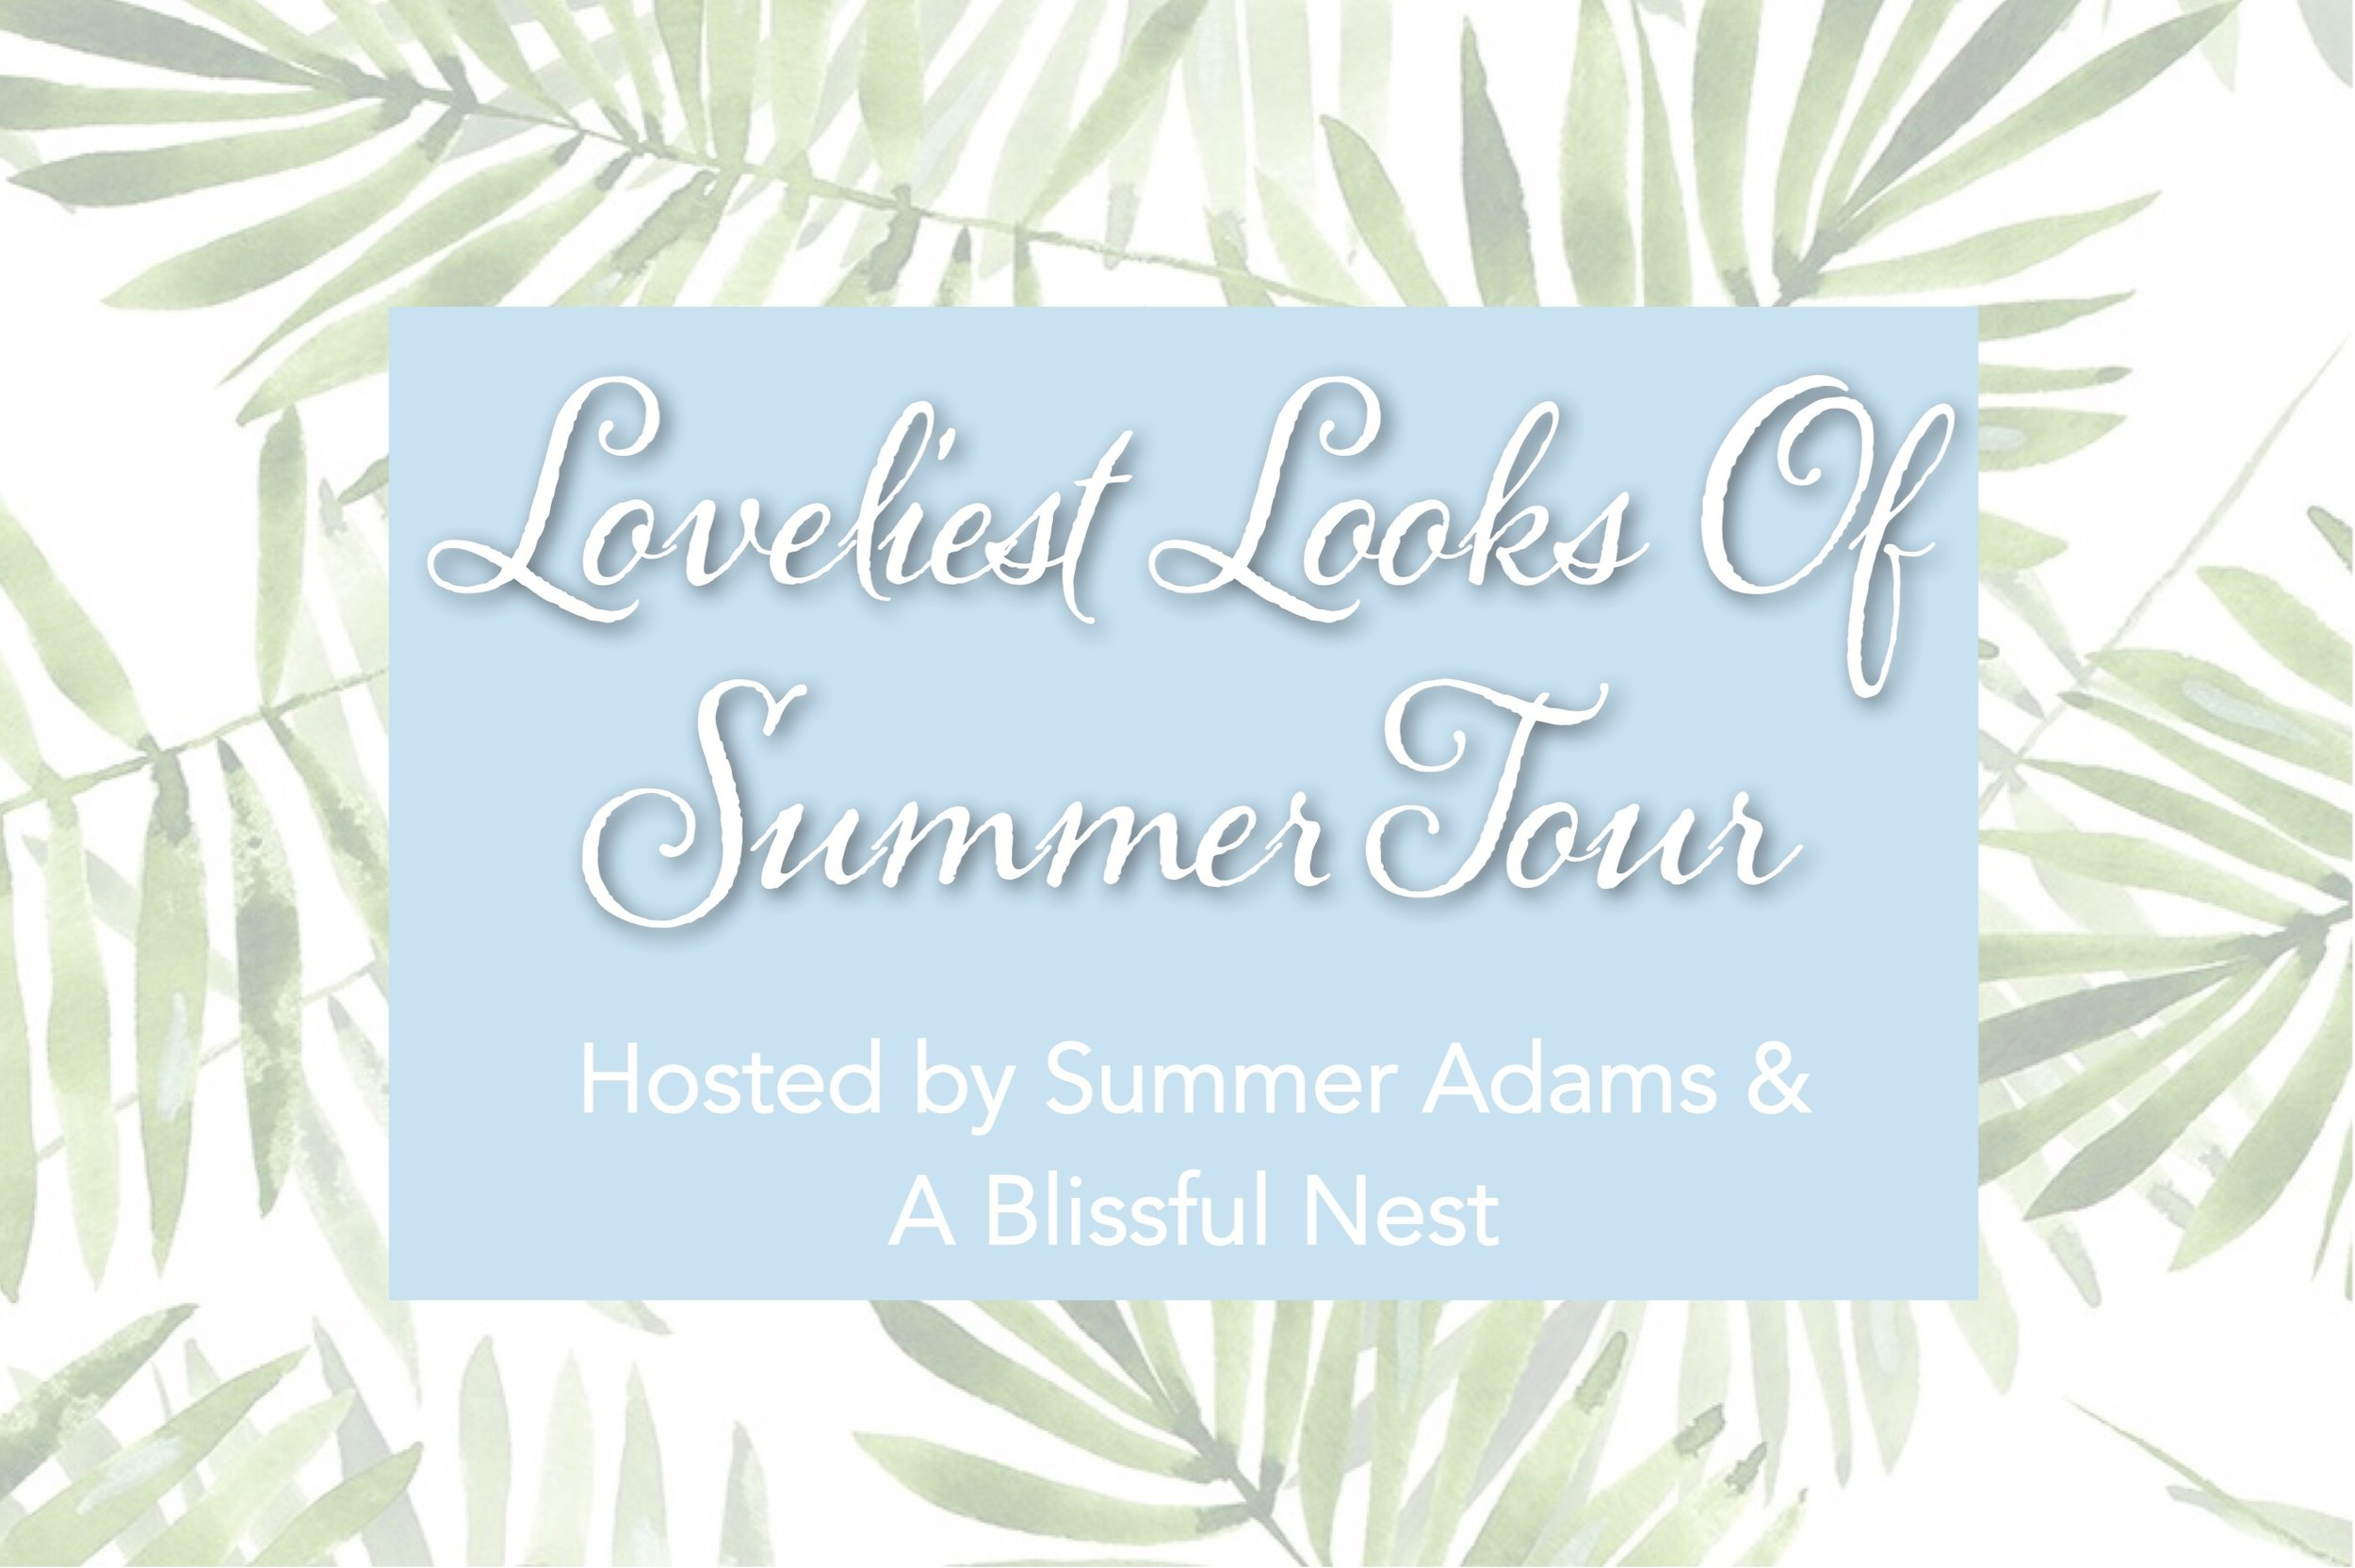 Loveliest Looks of Summer Tour - decor and fashion blog hop